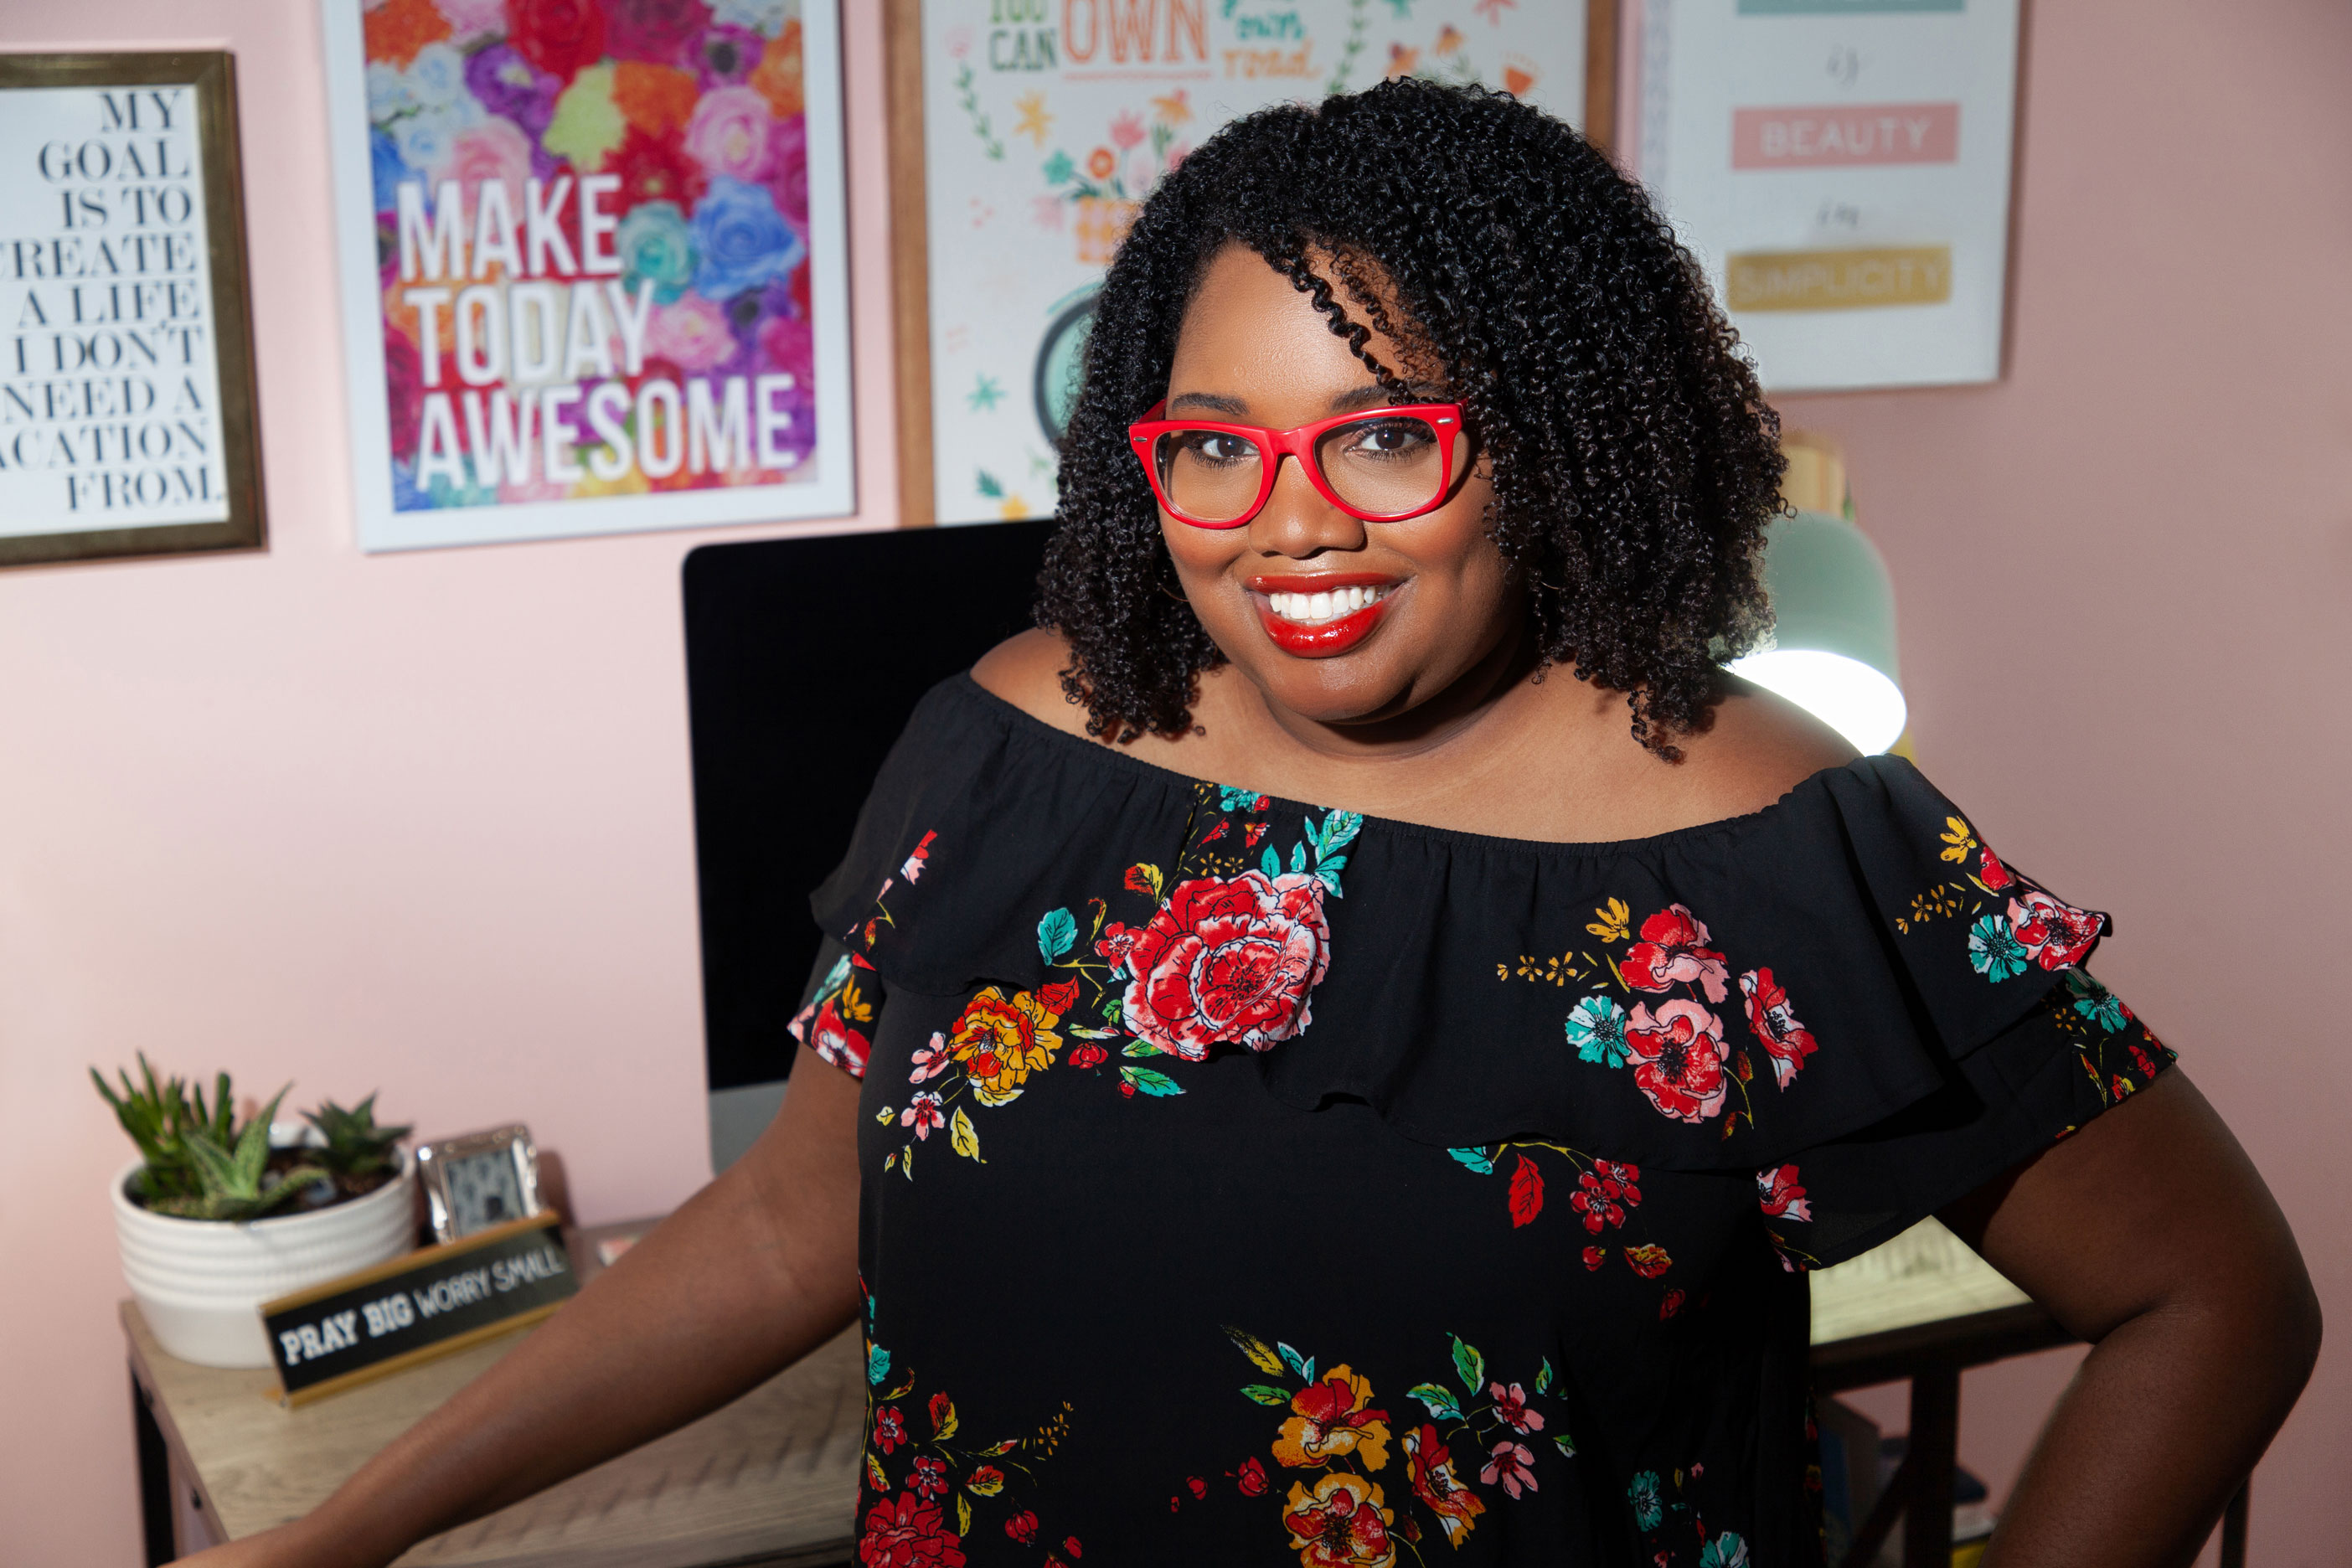 Brand Coach & Strategist, Tiffany Atkinson, is standing in her home office in front of her desk and inspiration wall. | Tiffany Atkinson Consulting | tiffanyatkinson.com